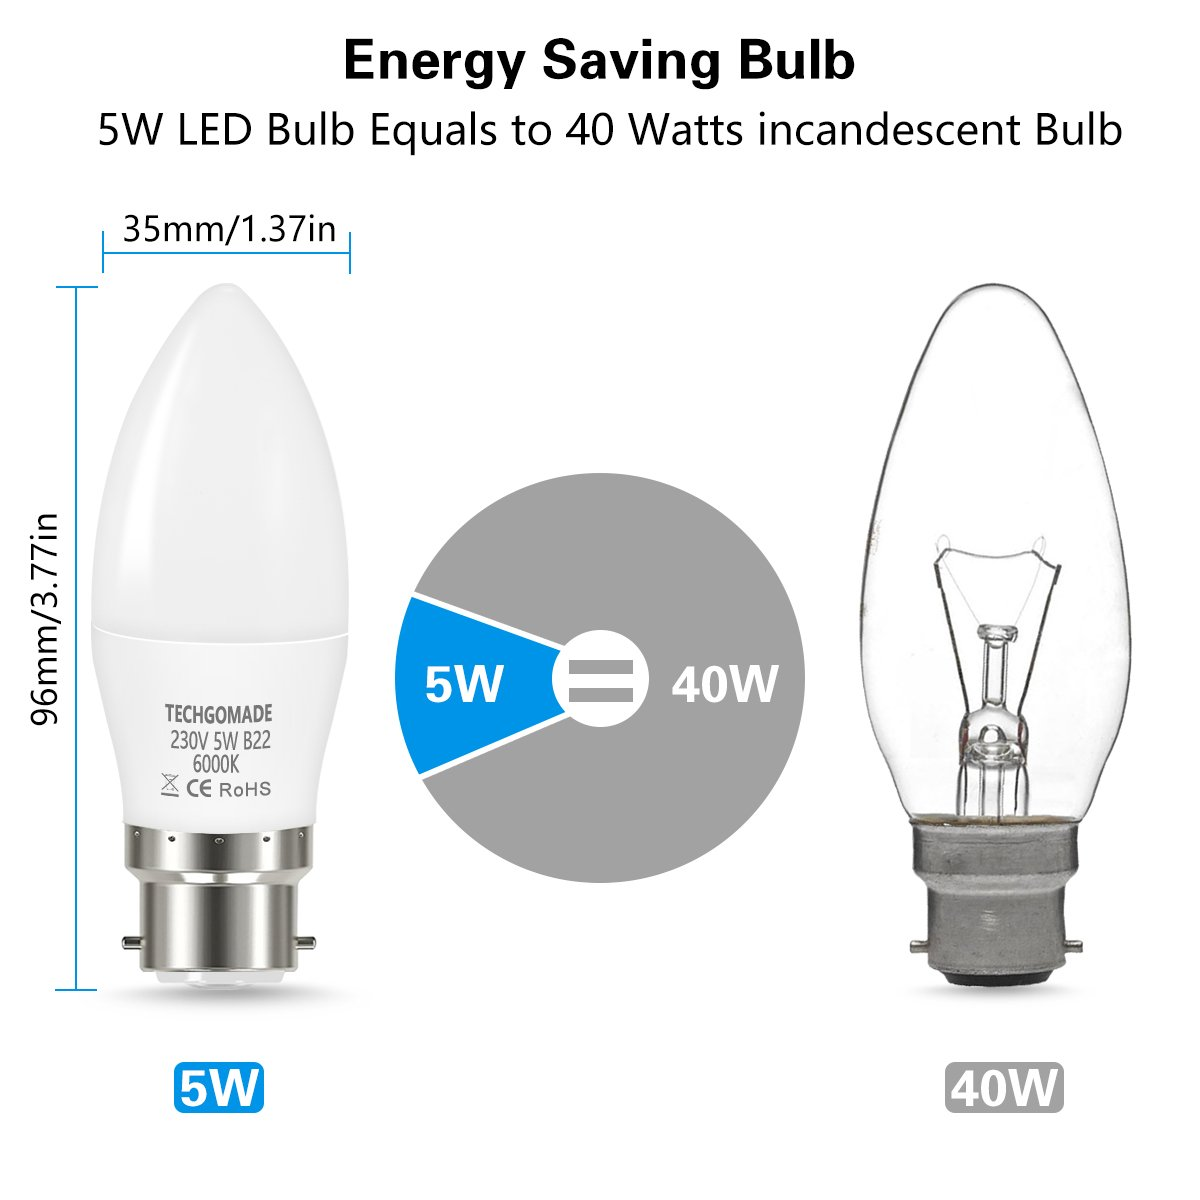 Techgomade B22 Led Candle Light Bulbs 5w 40w Incandescent Bulb Diagram Equivalent 6000k Day White Candelabra Non Dimmable 6 Pack Lighting